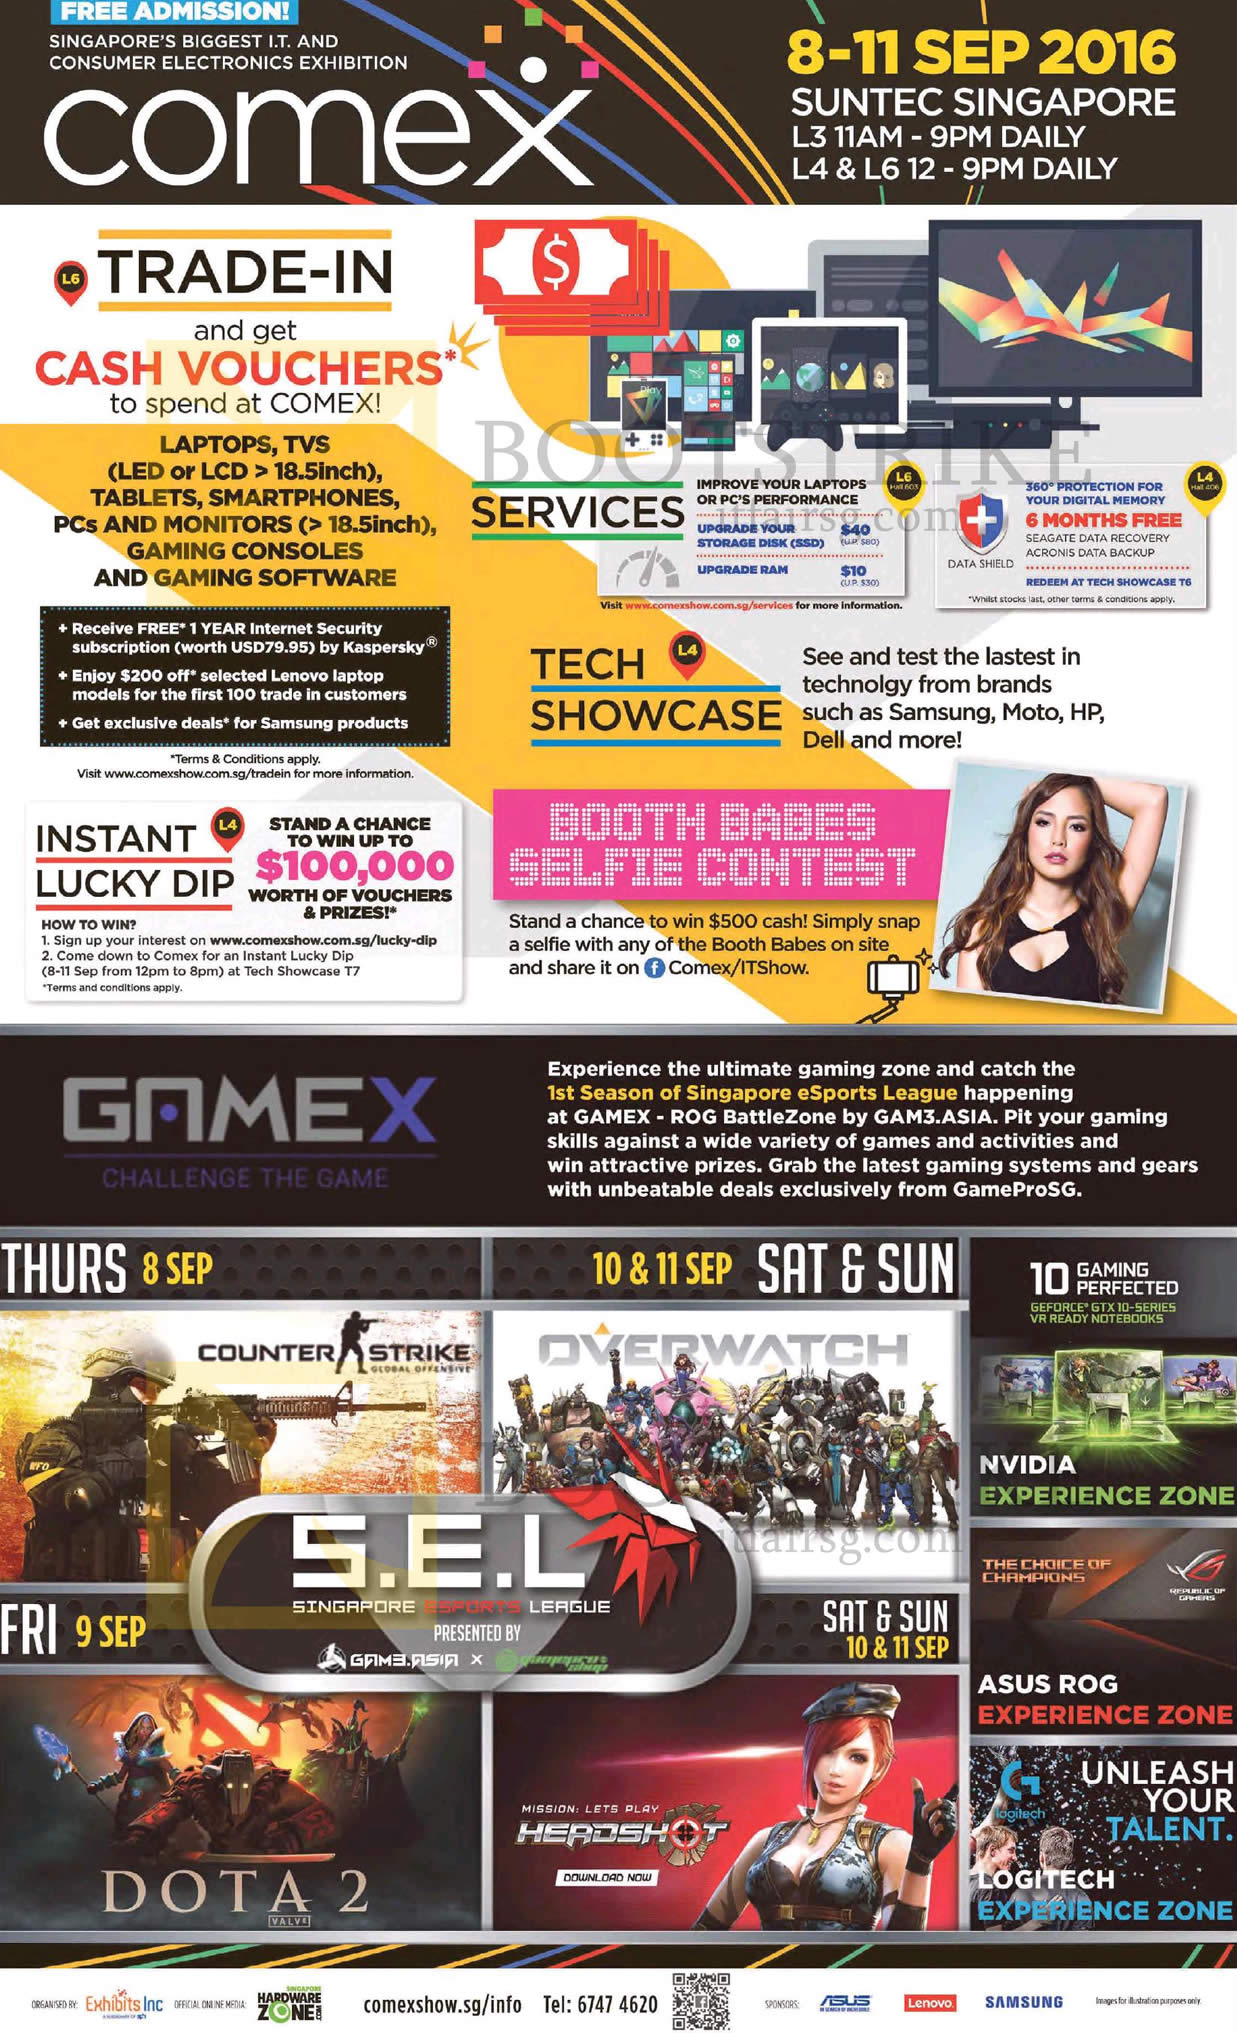 COMEX 2016 price list image brochure of COMEX 2016 Event Details, Venue, Opening Hours, Trade-in, Booth Babes Selfie, Gamex, Tech Showcase, Services